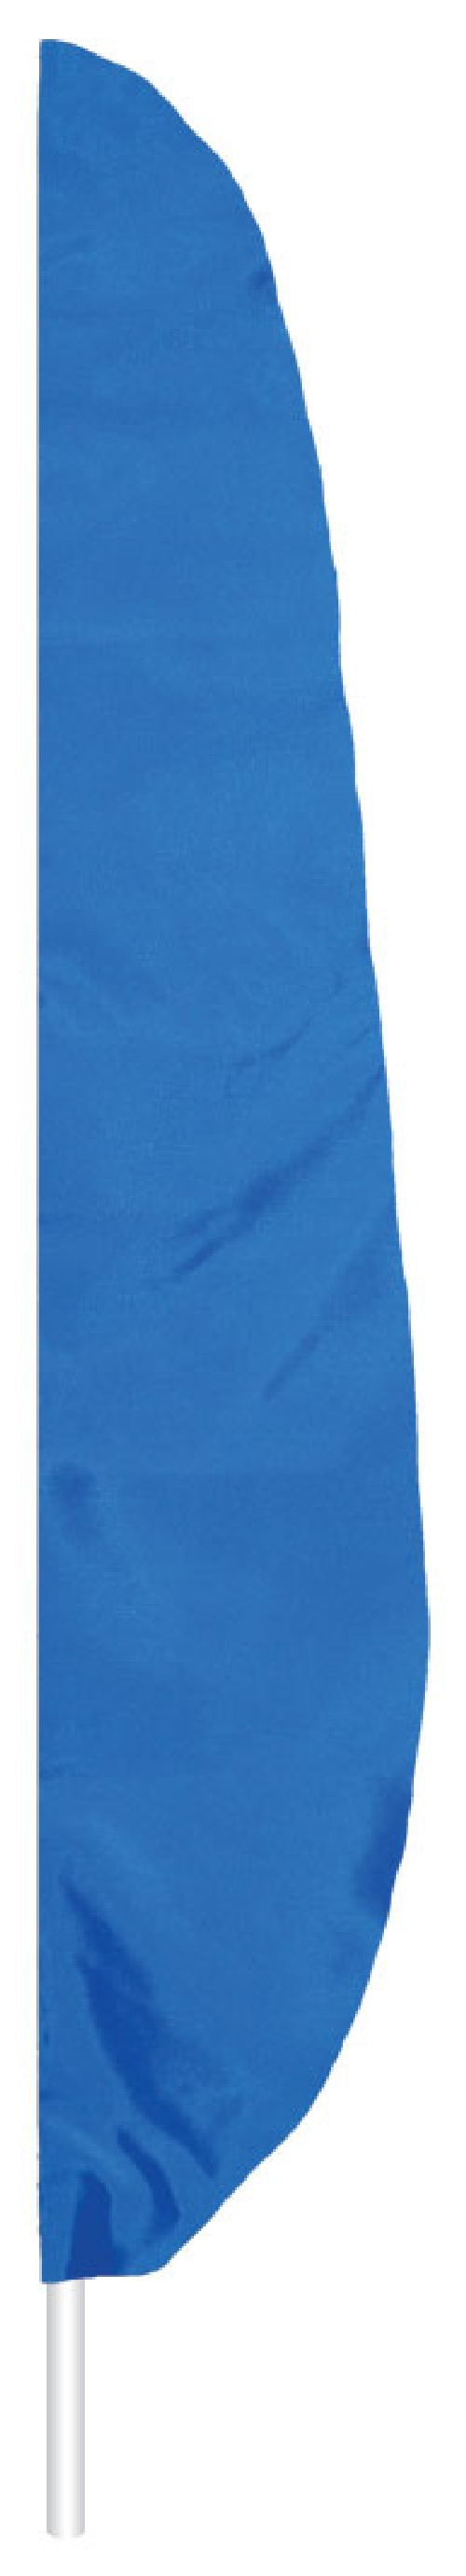 "Royal Blue Feather Flag - 7' x 17"" - Nylon"